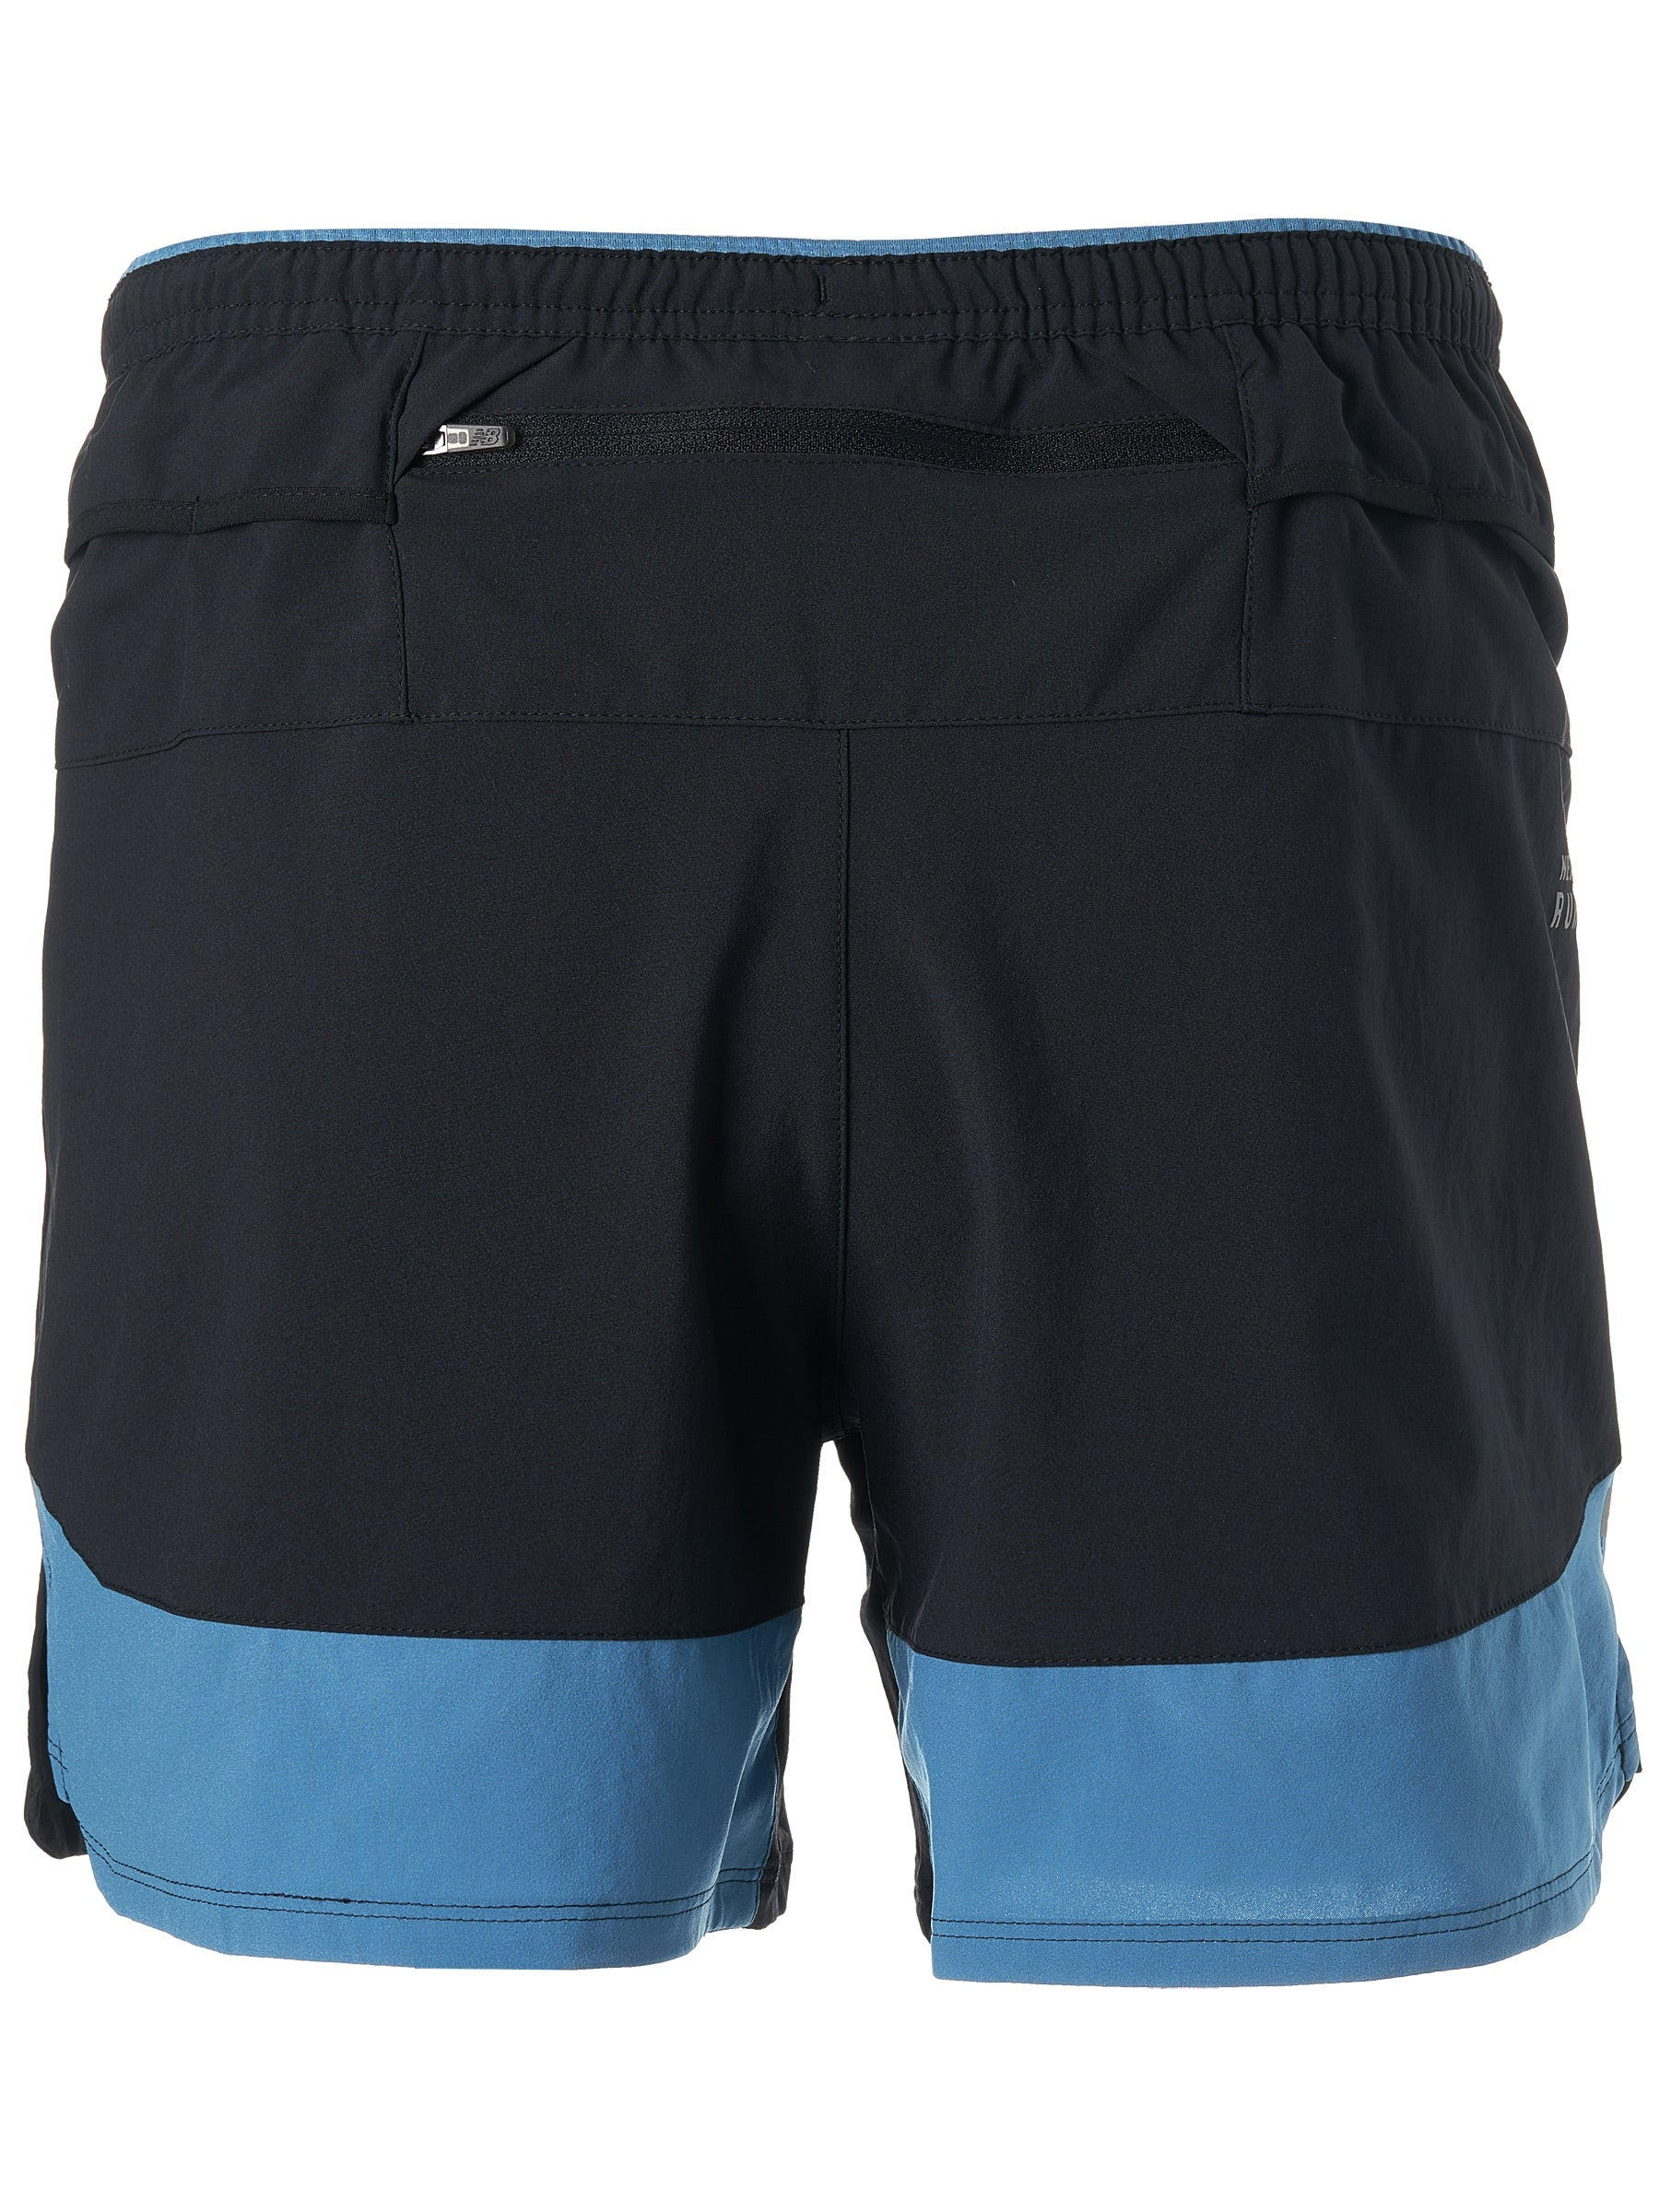 "Men's Impact Run 5"" Short (MAK - mako blue w/ black)"